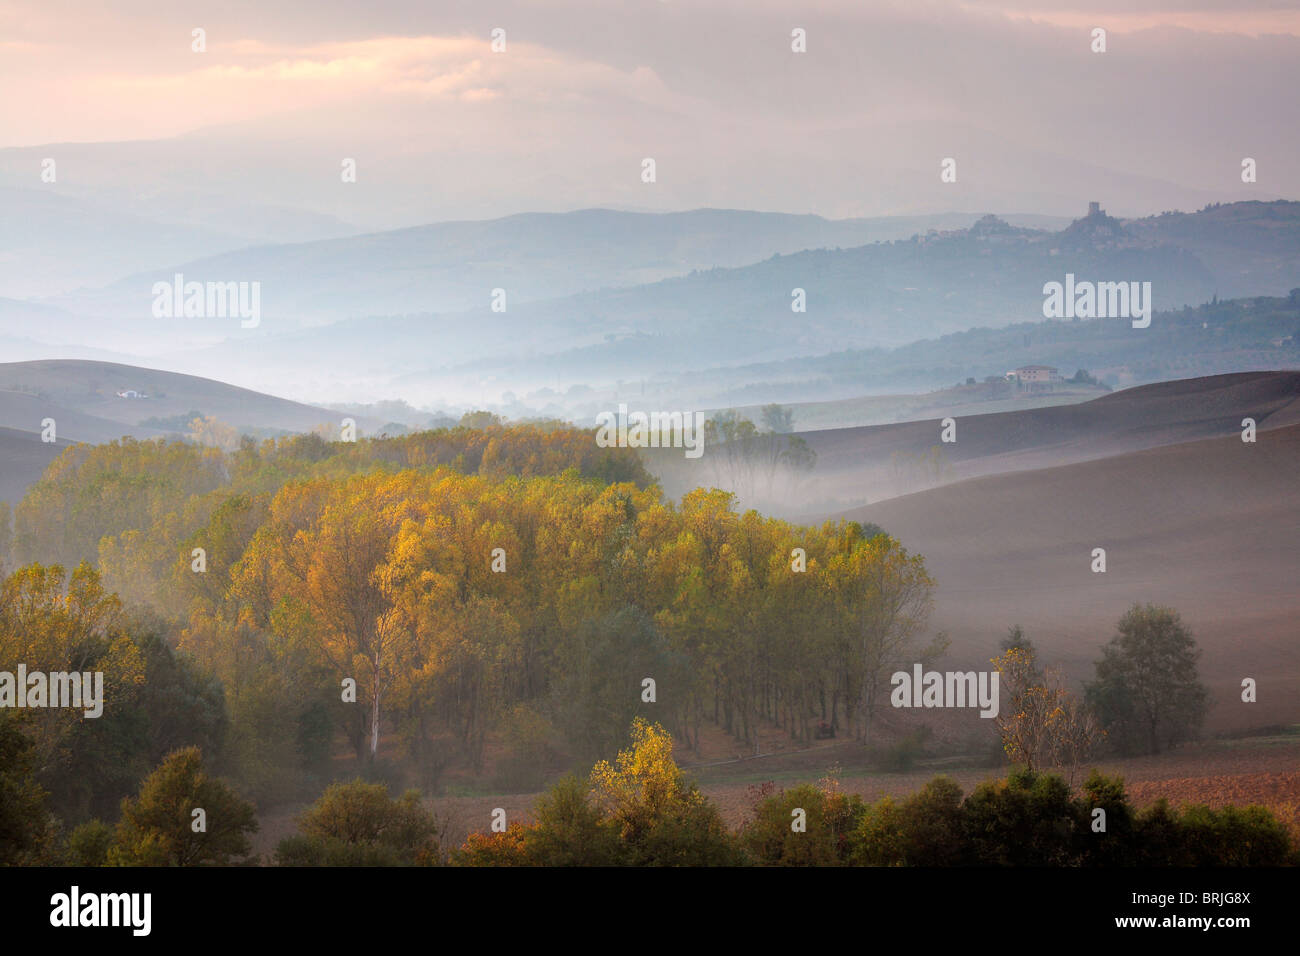 A fog-shrouded Mt Amiata looms over a misty valley near San Quirico D'Orcia in Tuscany, Italy. - Stock Image